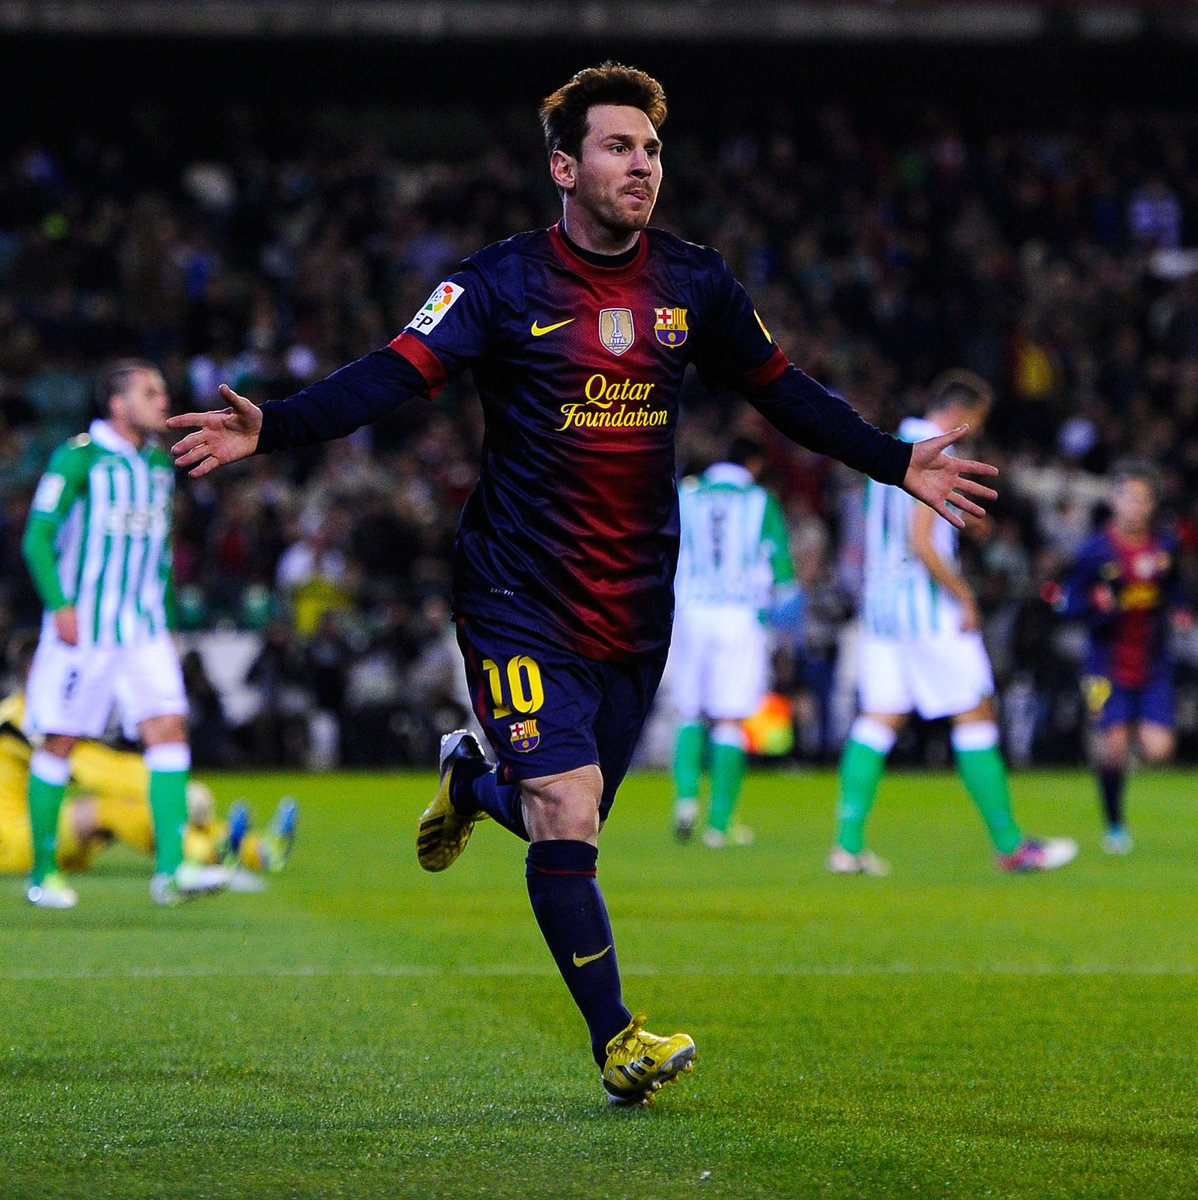 #OnThisDay  years ago...  Lionel Messi scored his 85th and 86th goals of 2012 to break Gerd Muller's calendar year scoring record   Altogether he scored 91 goals in 2012  <br>http://pic.twitter.com/B6NhNSzHZC